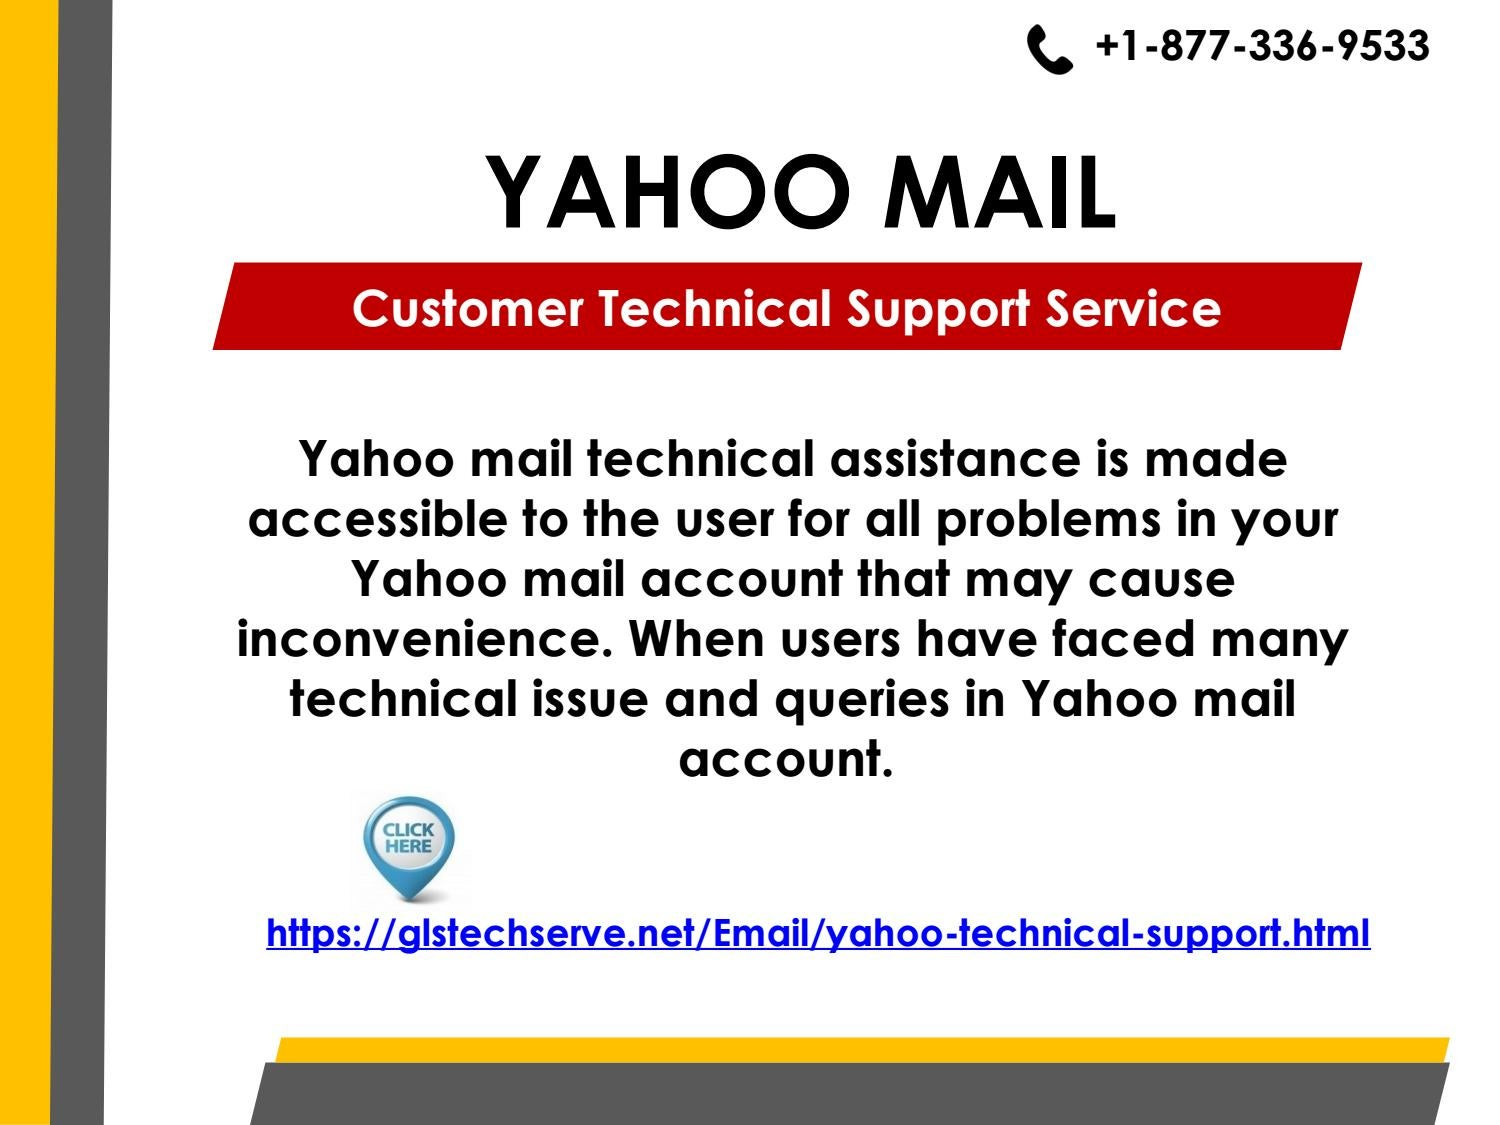 Yahoo Mail Customer Tech Support Service Number +1-877-336-9533